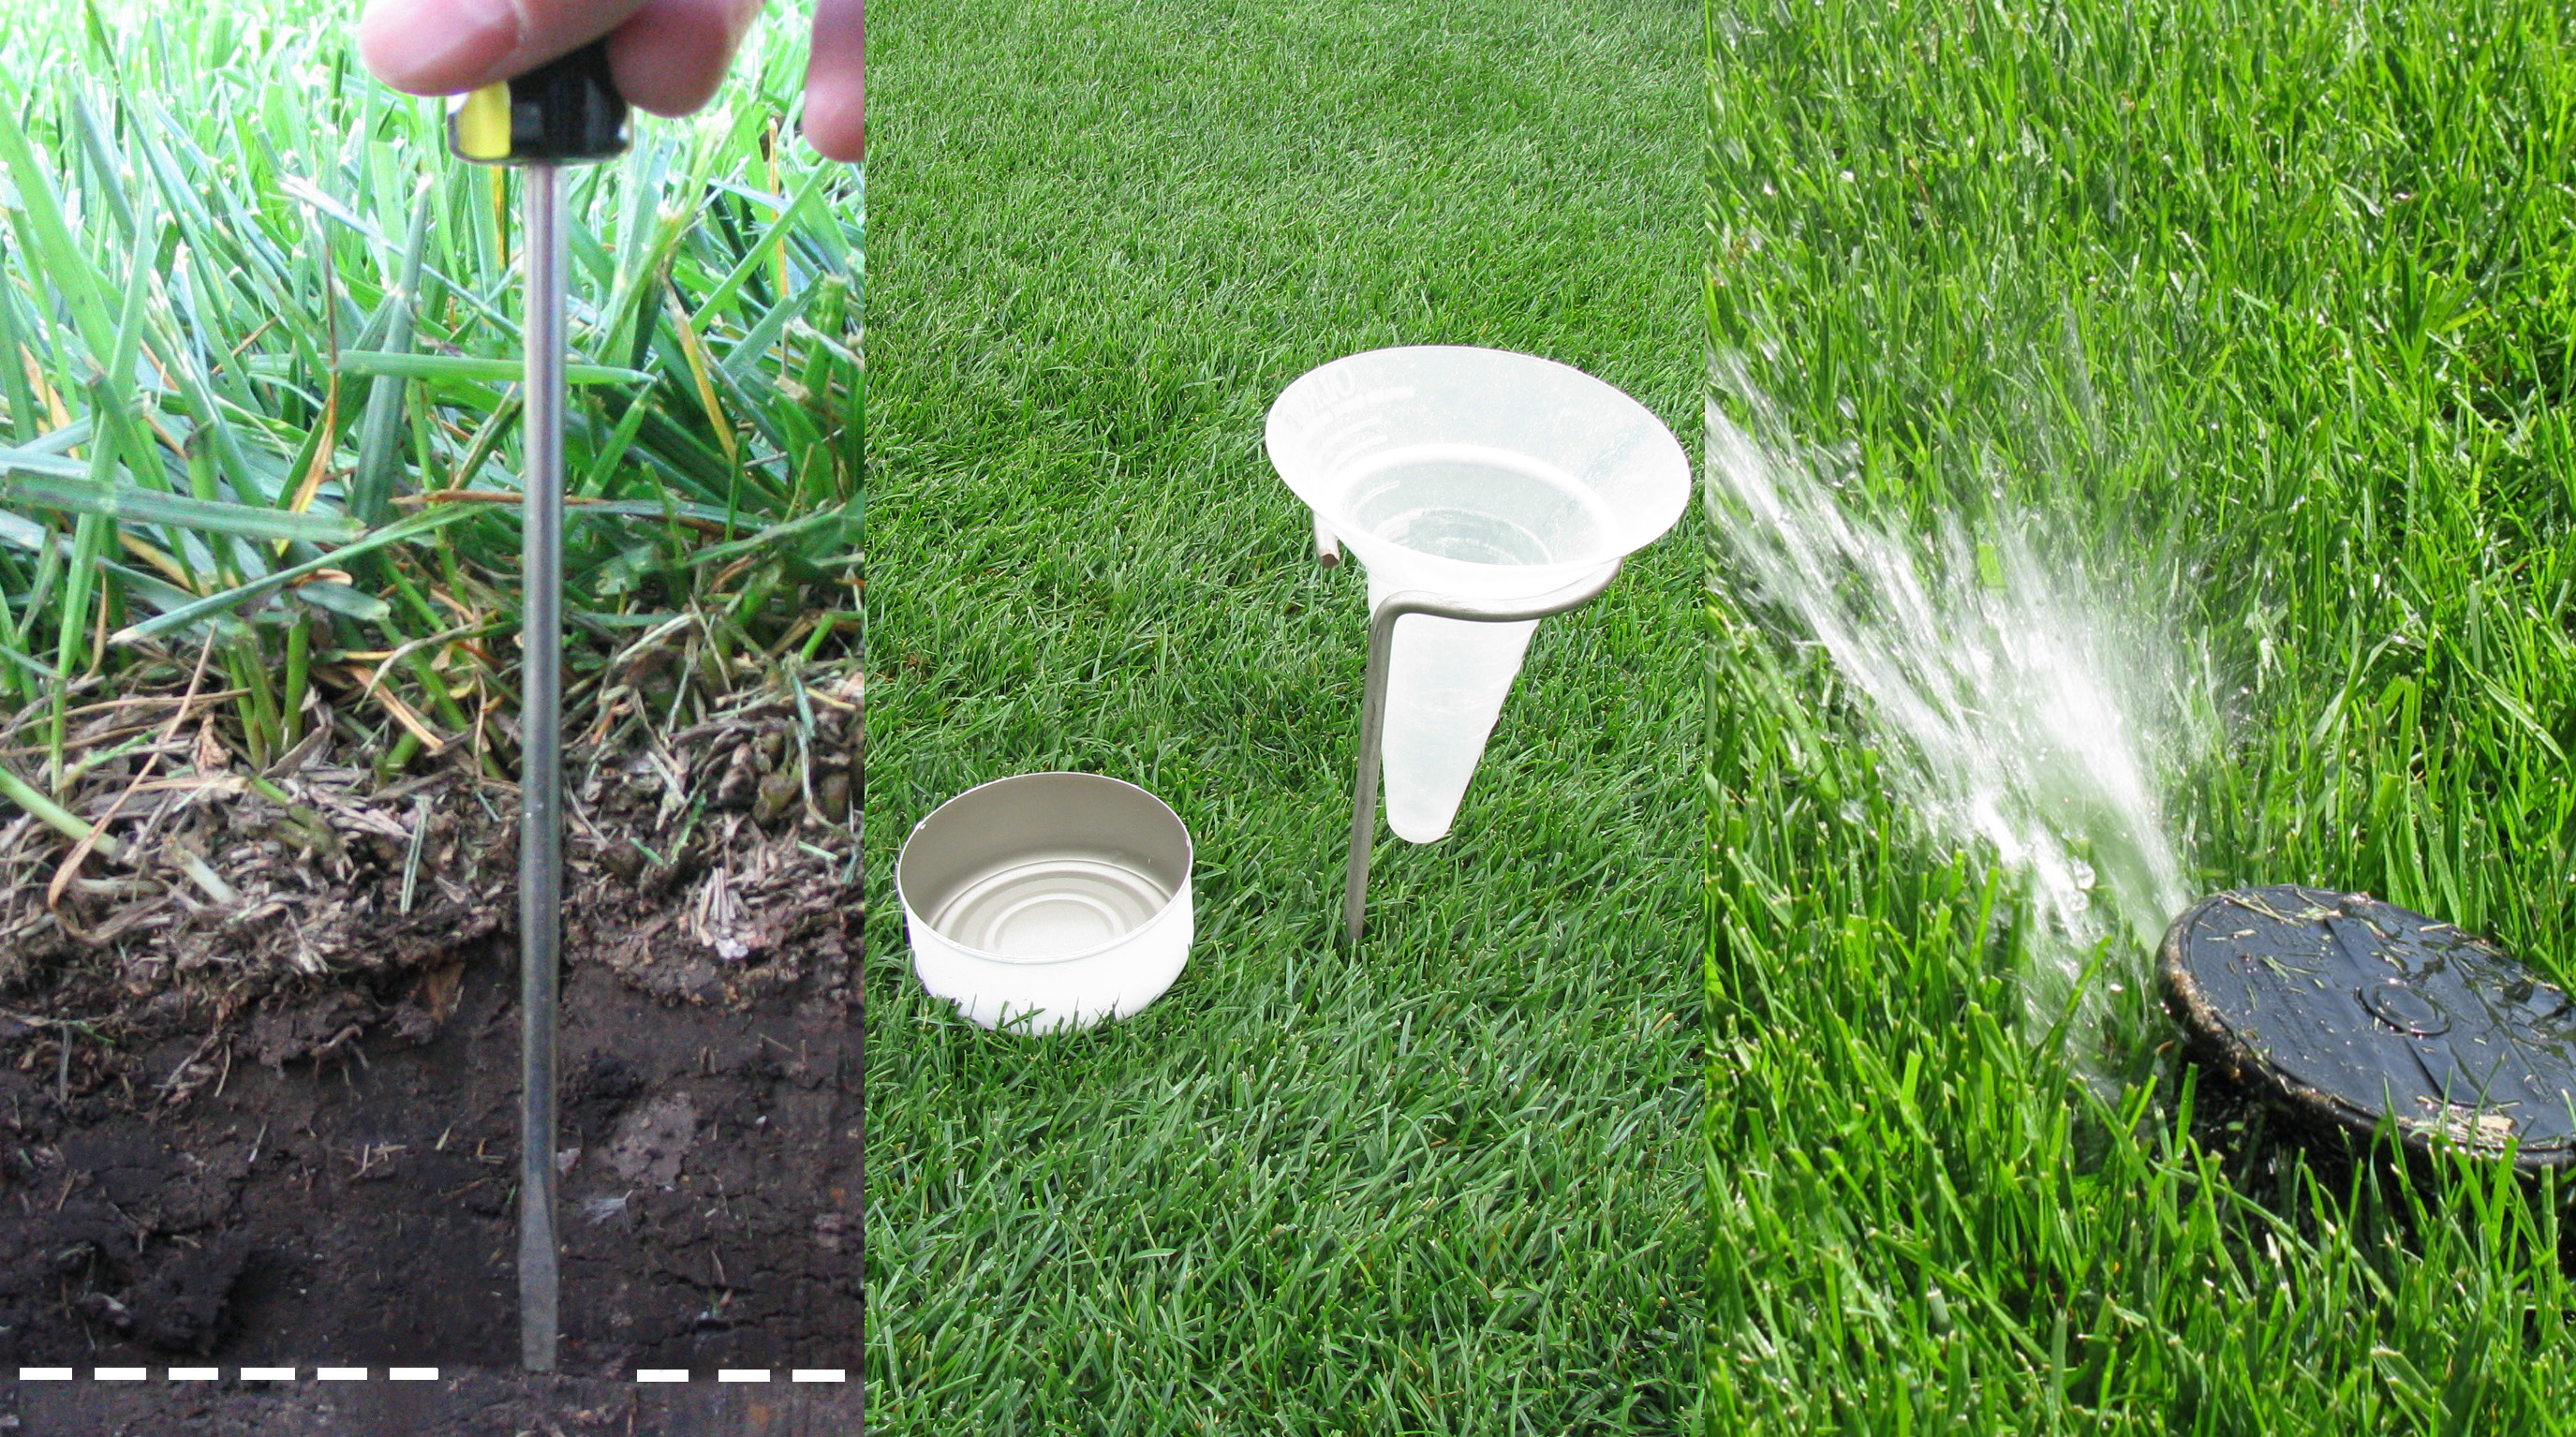 (Left) Screwdriver or other probe can help figure how deep water has penetrated soil. (Center) Irrigation water measuring devices can include a tuna can or catch cup. (Right) Irrigation head needing adjustment to set output nozzle higher above grass.